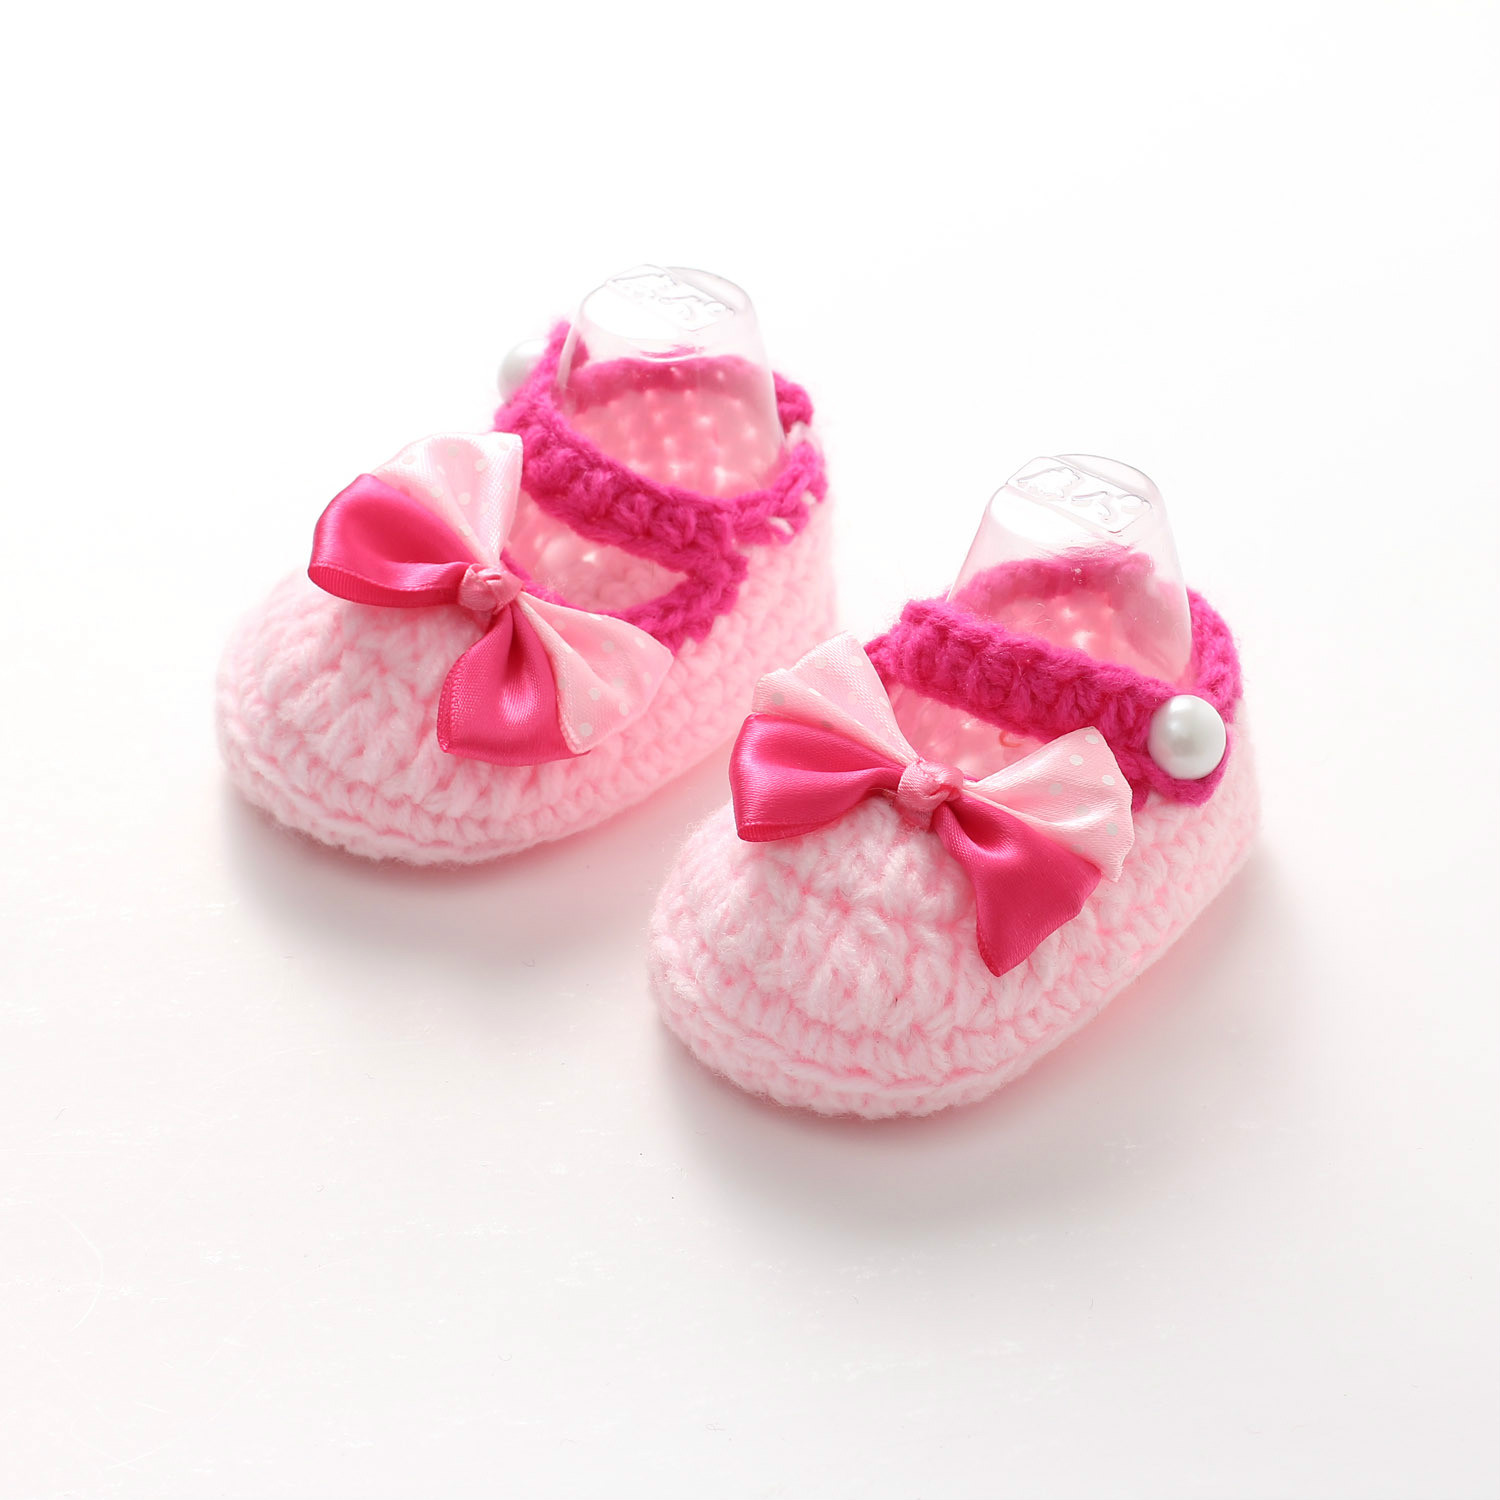 Baby Shoes Mother & Kids Able 11cm 1pair Pure Manual Weaving Yarn Baby Soft Bottom Toddler Shoes Bowknot Is Baby Pink Xd-197 Toddler Girl Shoes